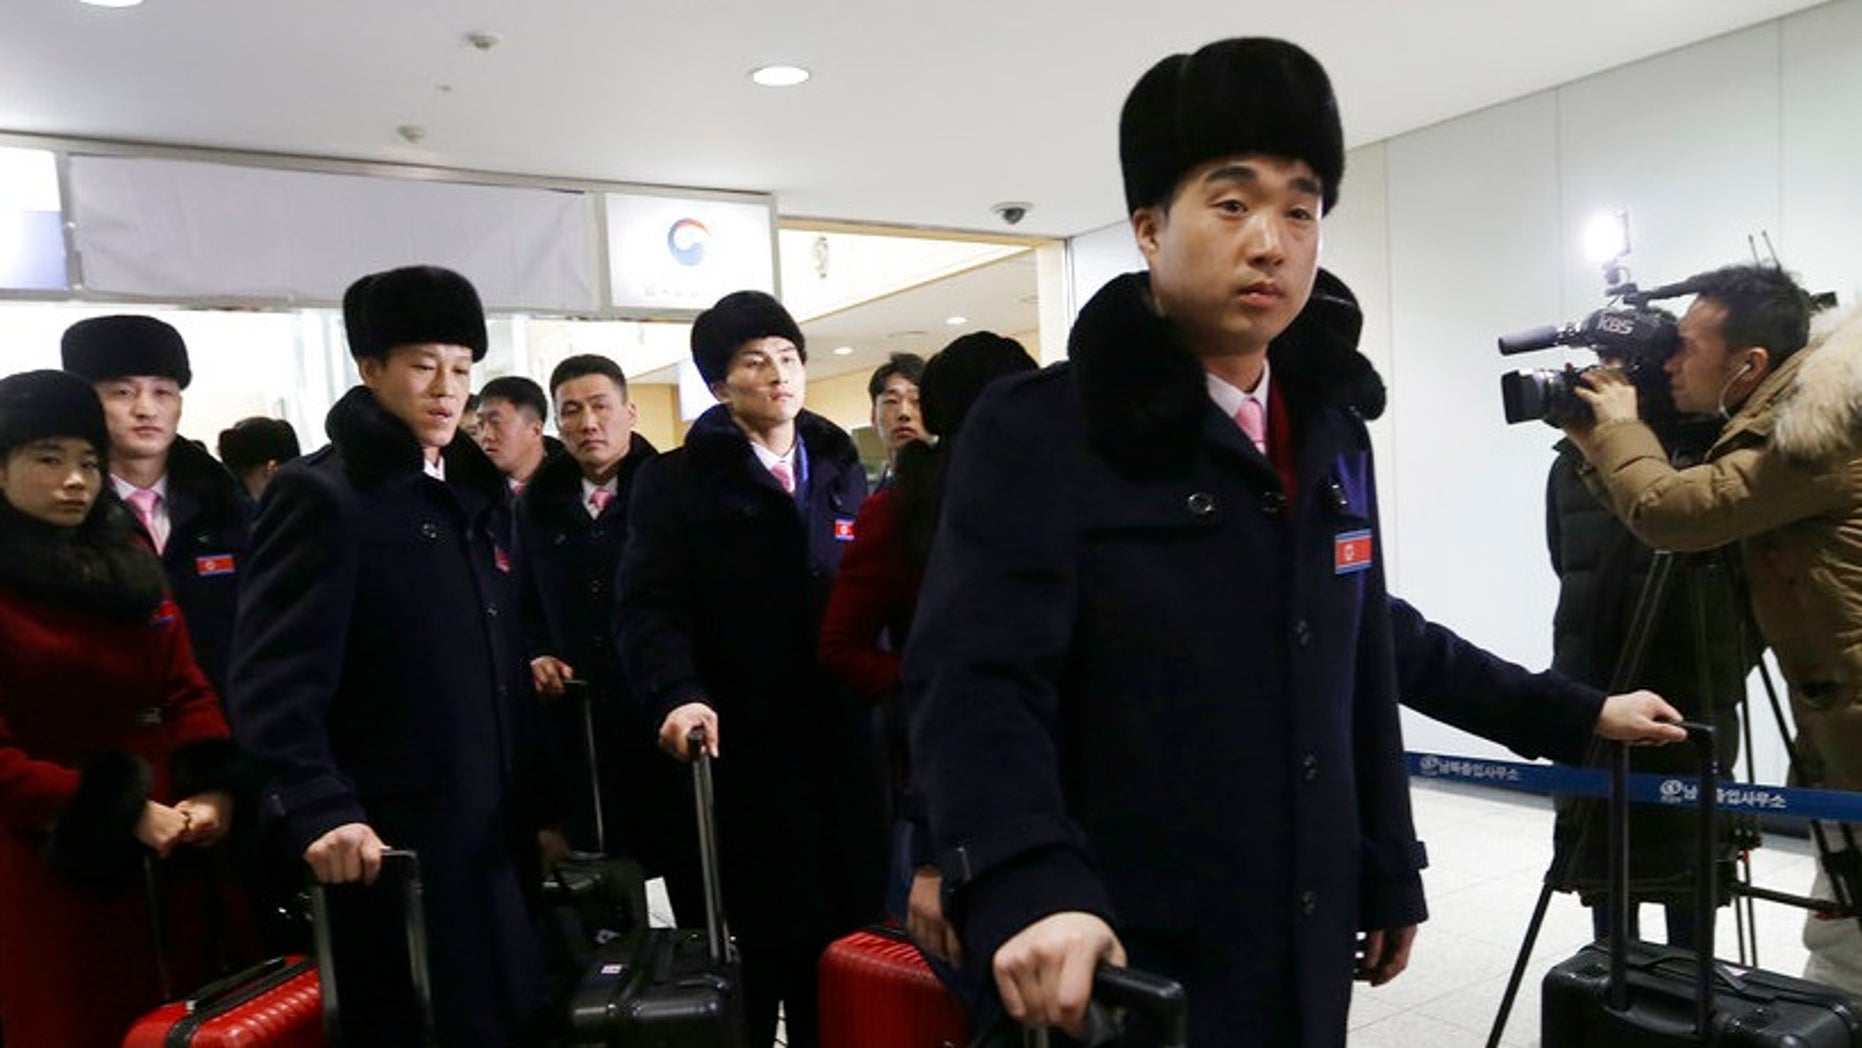 Members of North Korea's Taekwondo demonstration team, pictured, are part of the delegation whose Olympic expenses South Korea agreed to pay, according to a report.